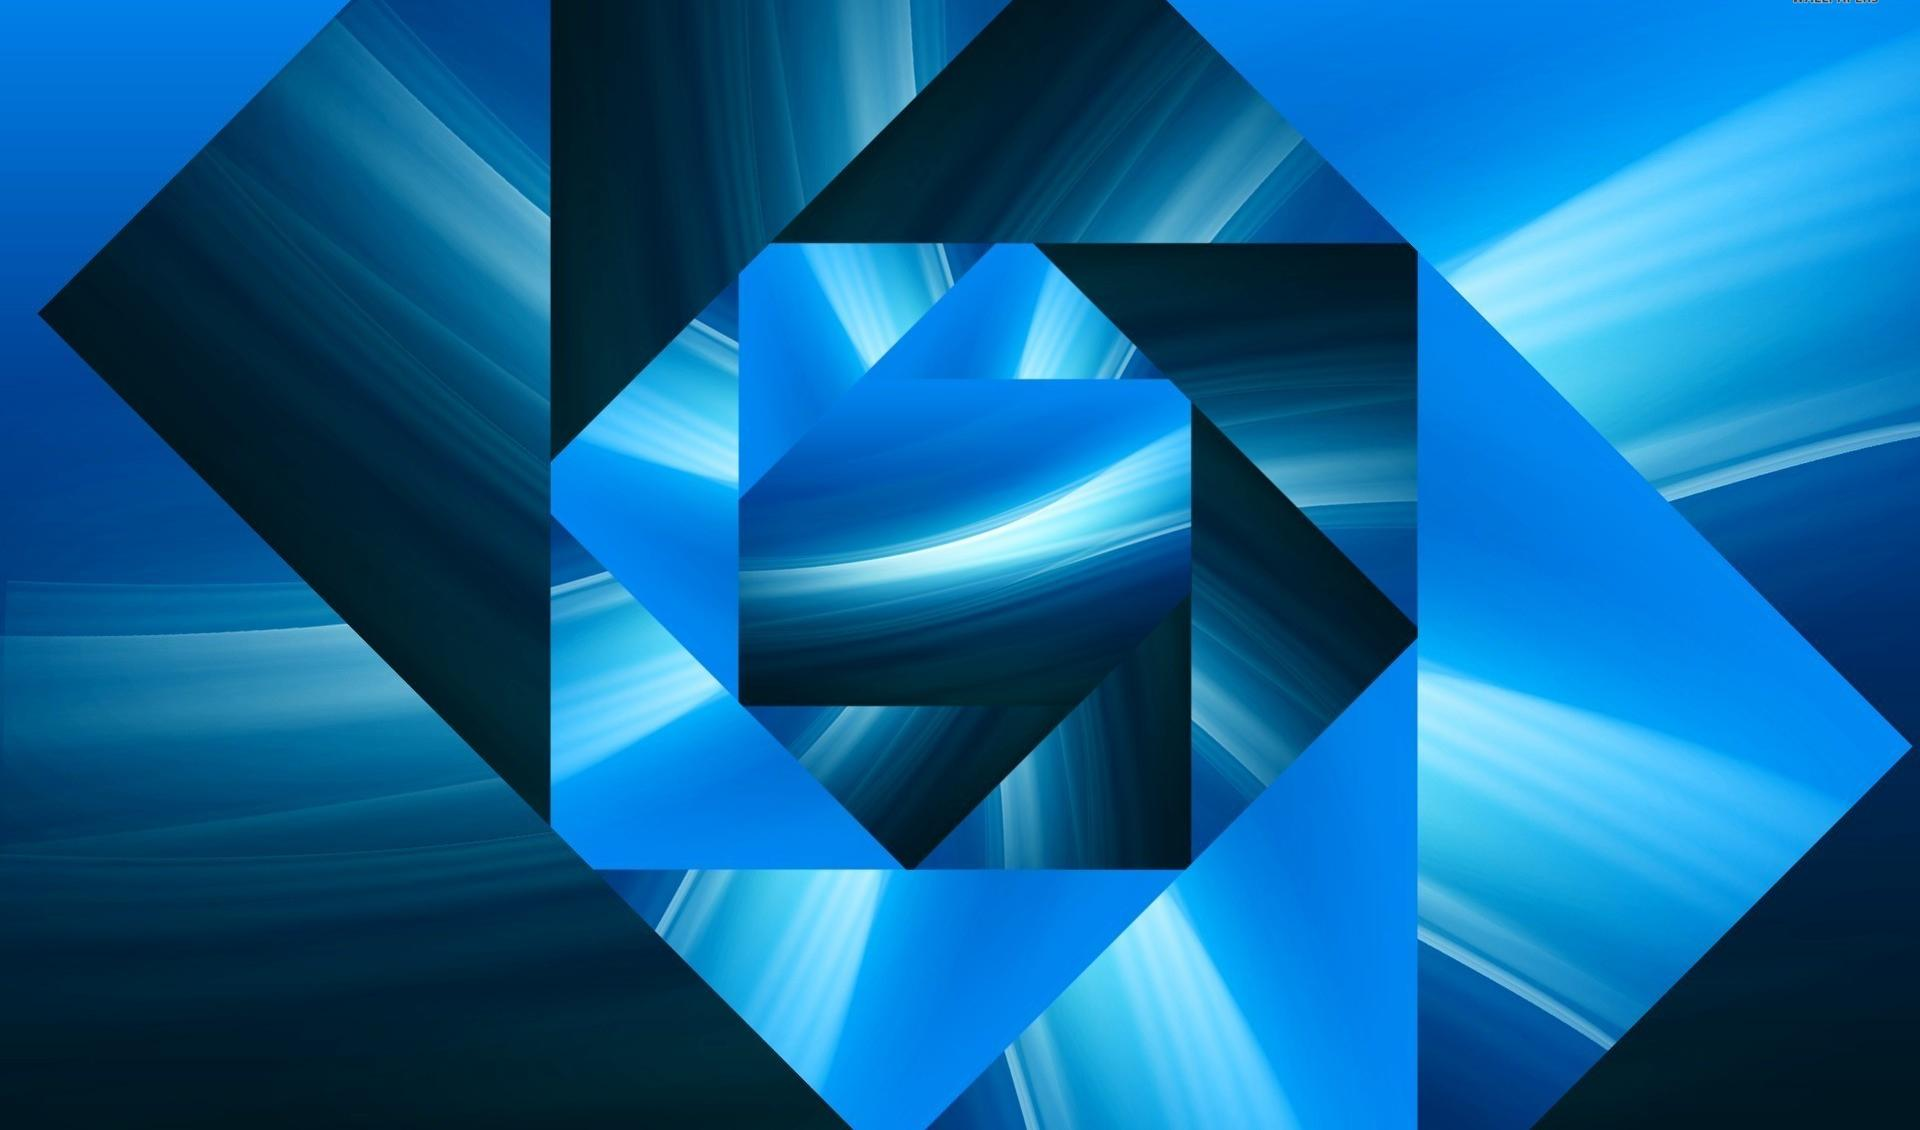 Blue square spiral wallpapers HD quality